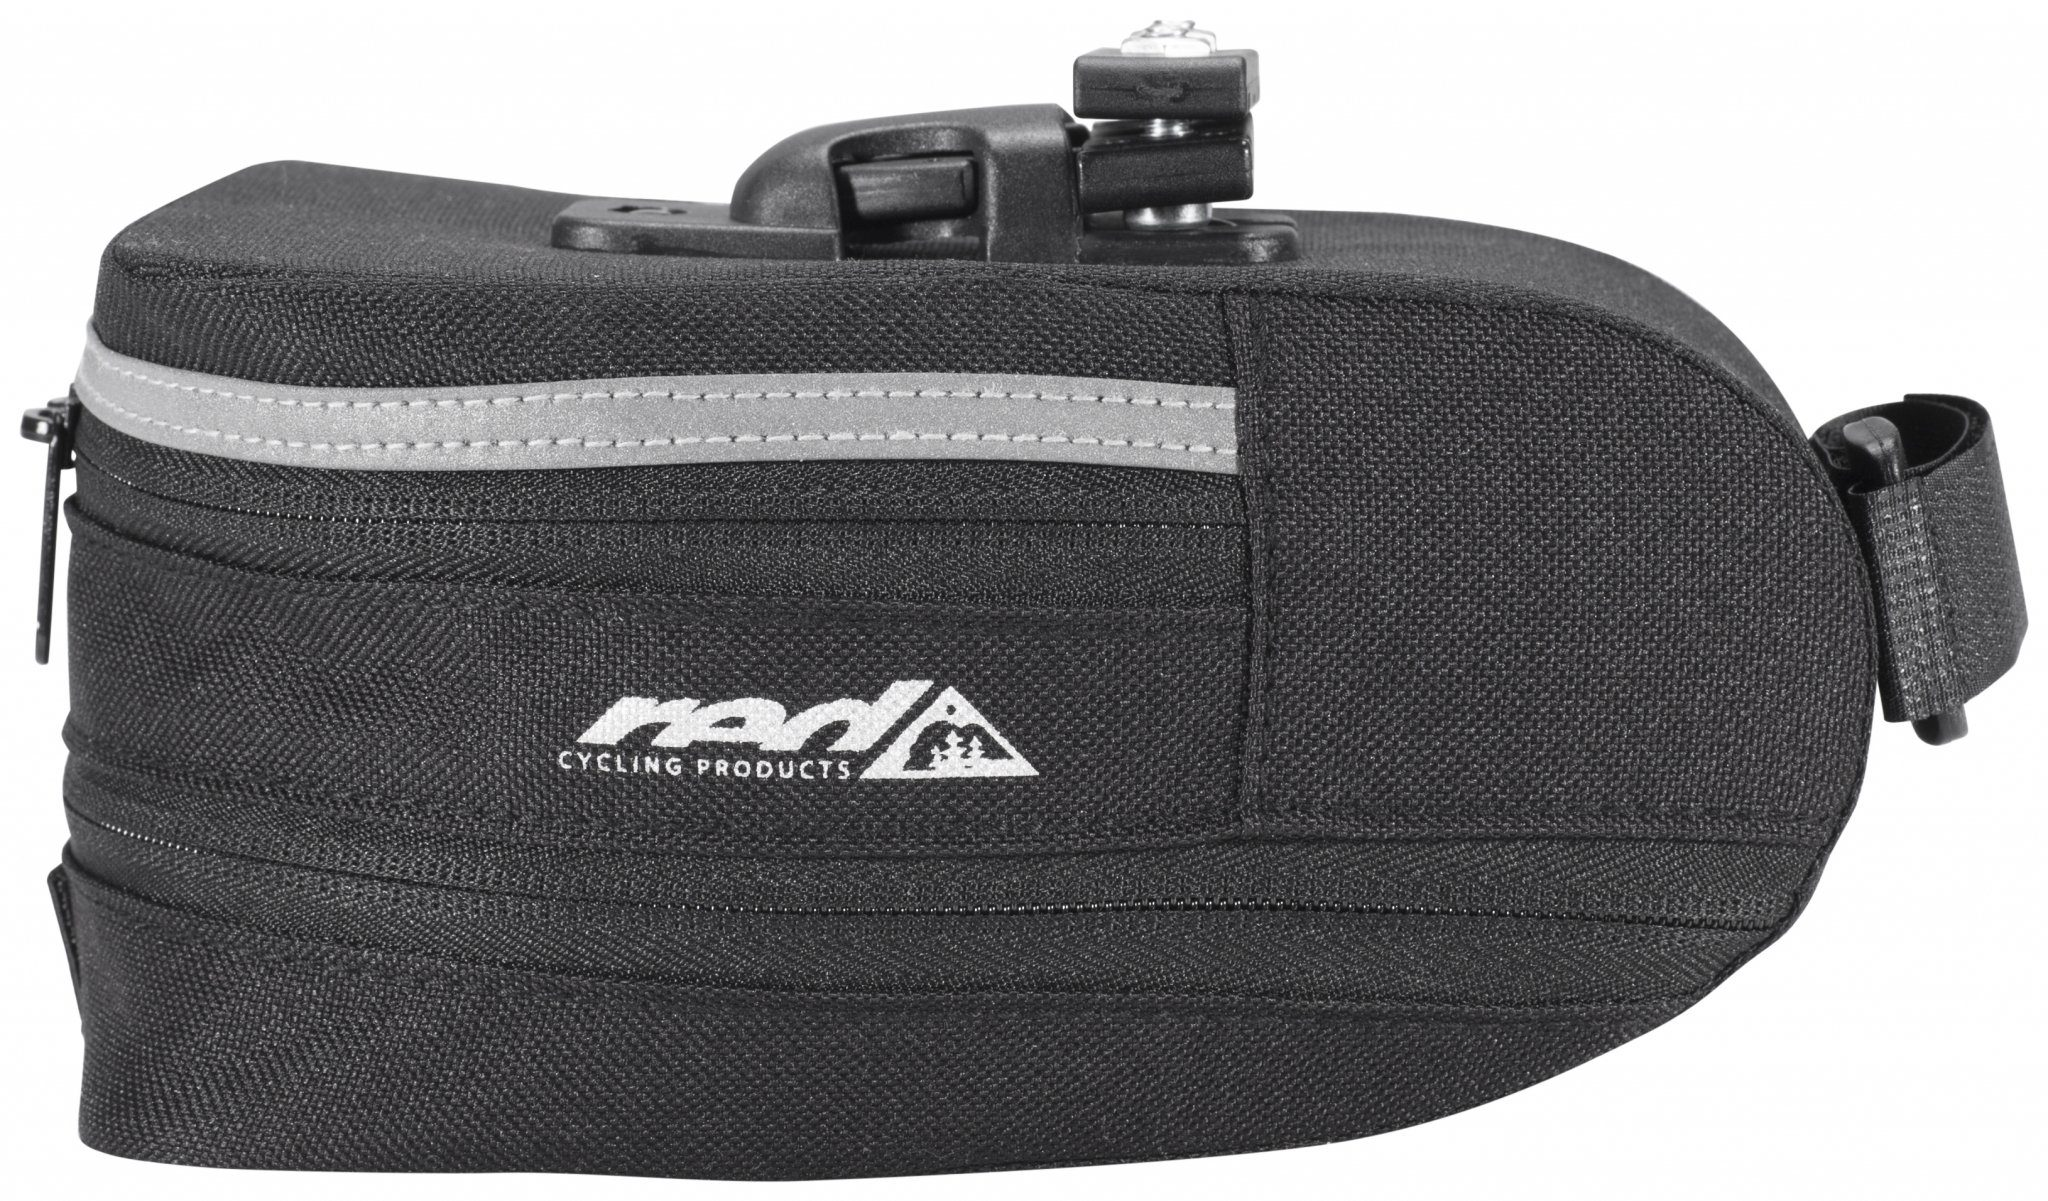 Red Cycling Products Fahrradtasche »Saddle Bag X1 Satteltasche«